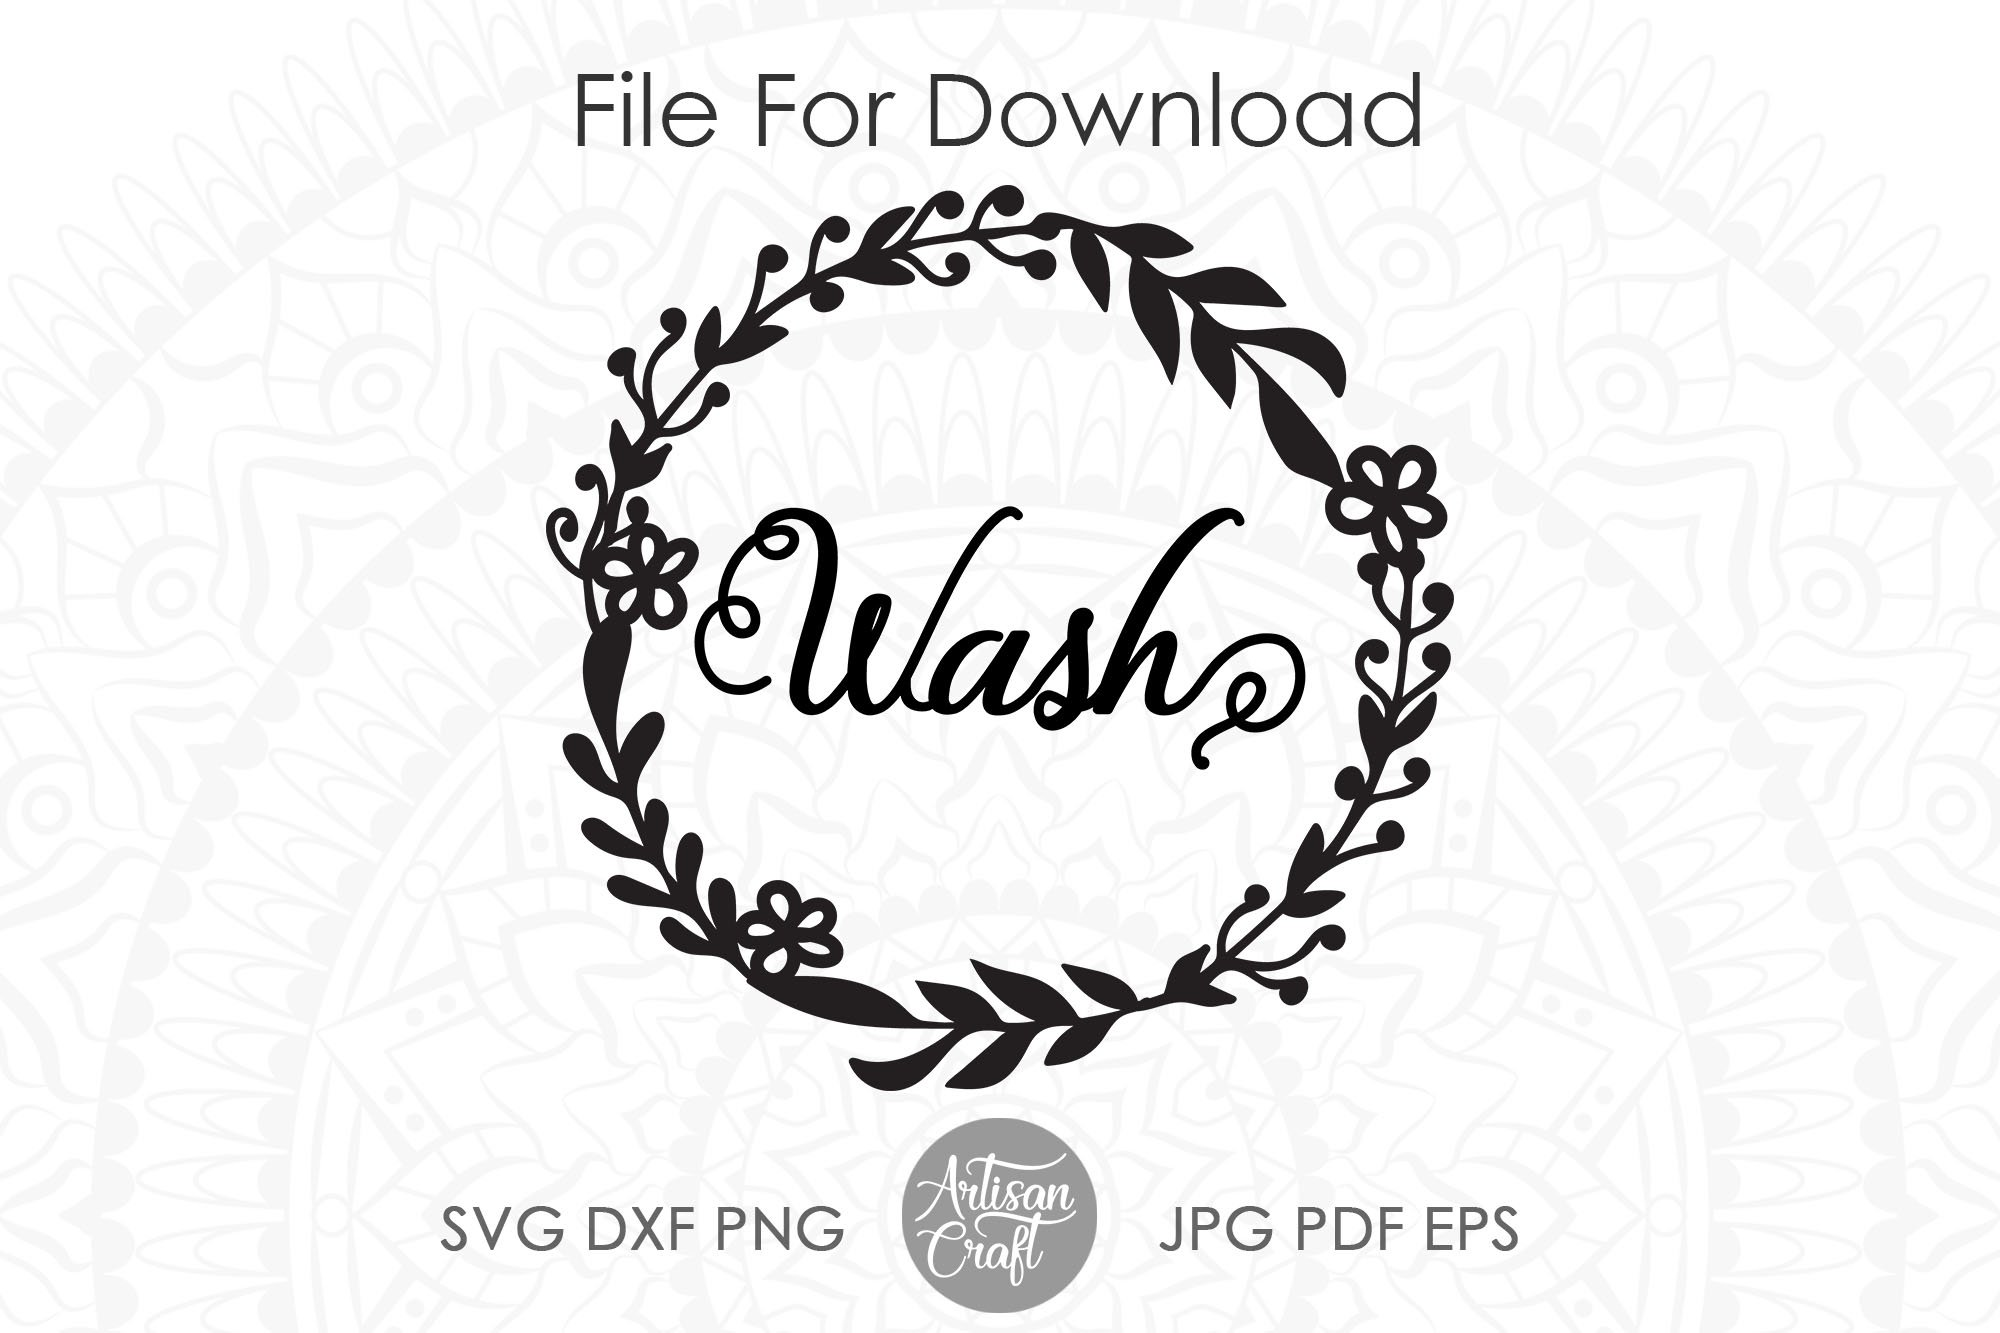 Wash dry svg, washer dryer decals, floral wreath png example image 2